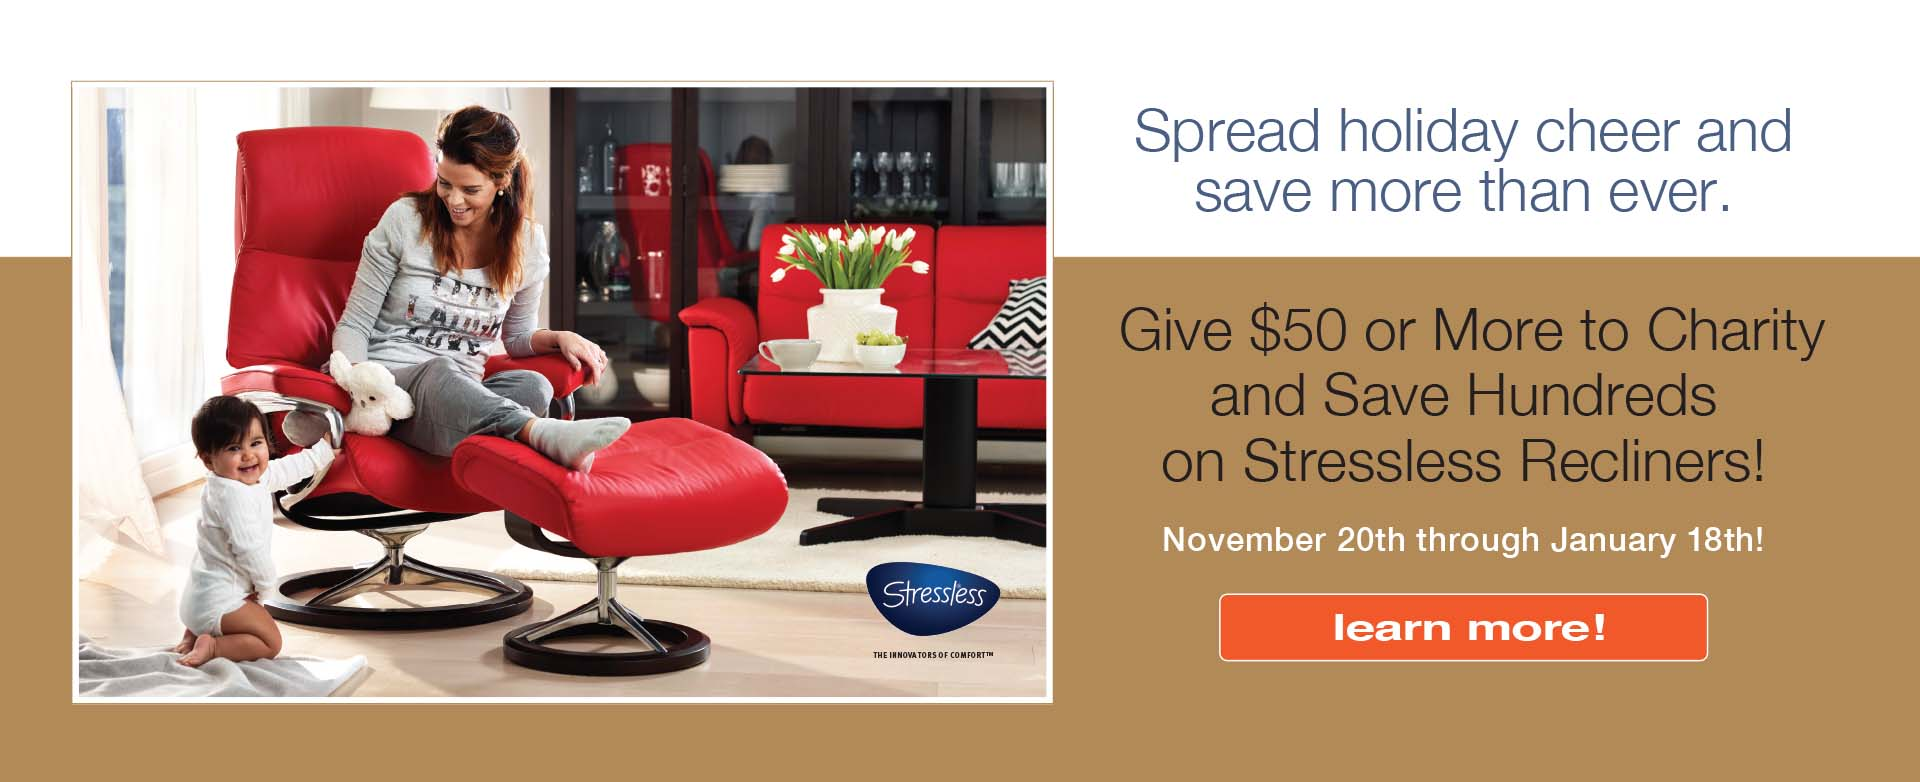 Stressless Charity Promo